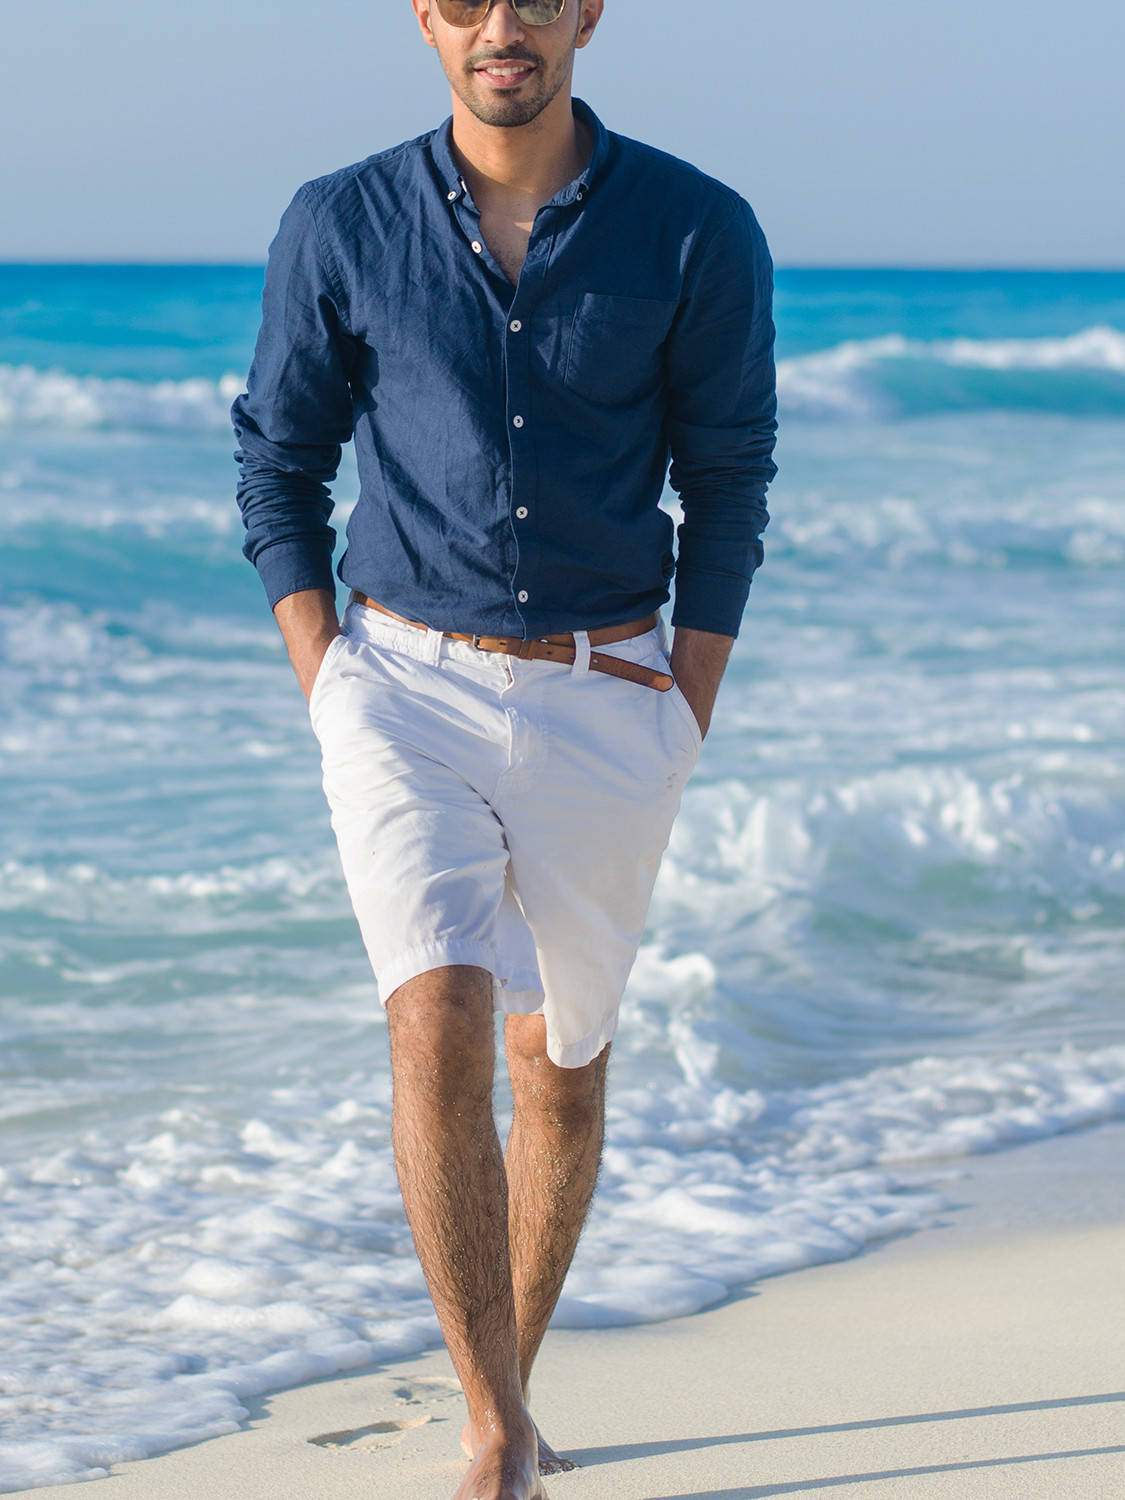 Men's outfit idea for 2021 with blue plain casual shirt, white cotton shorts, brown boat shoes. Suitable for summer.